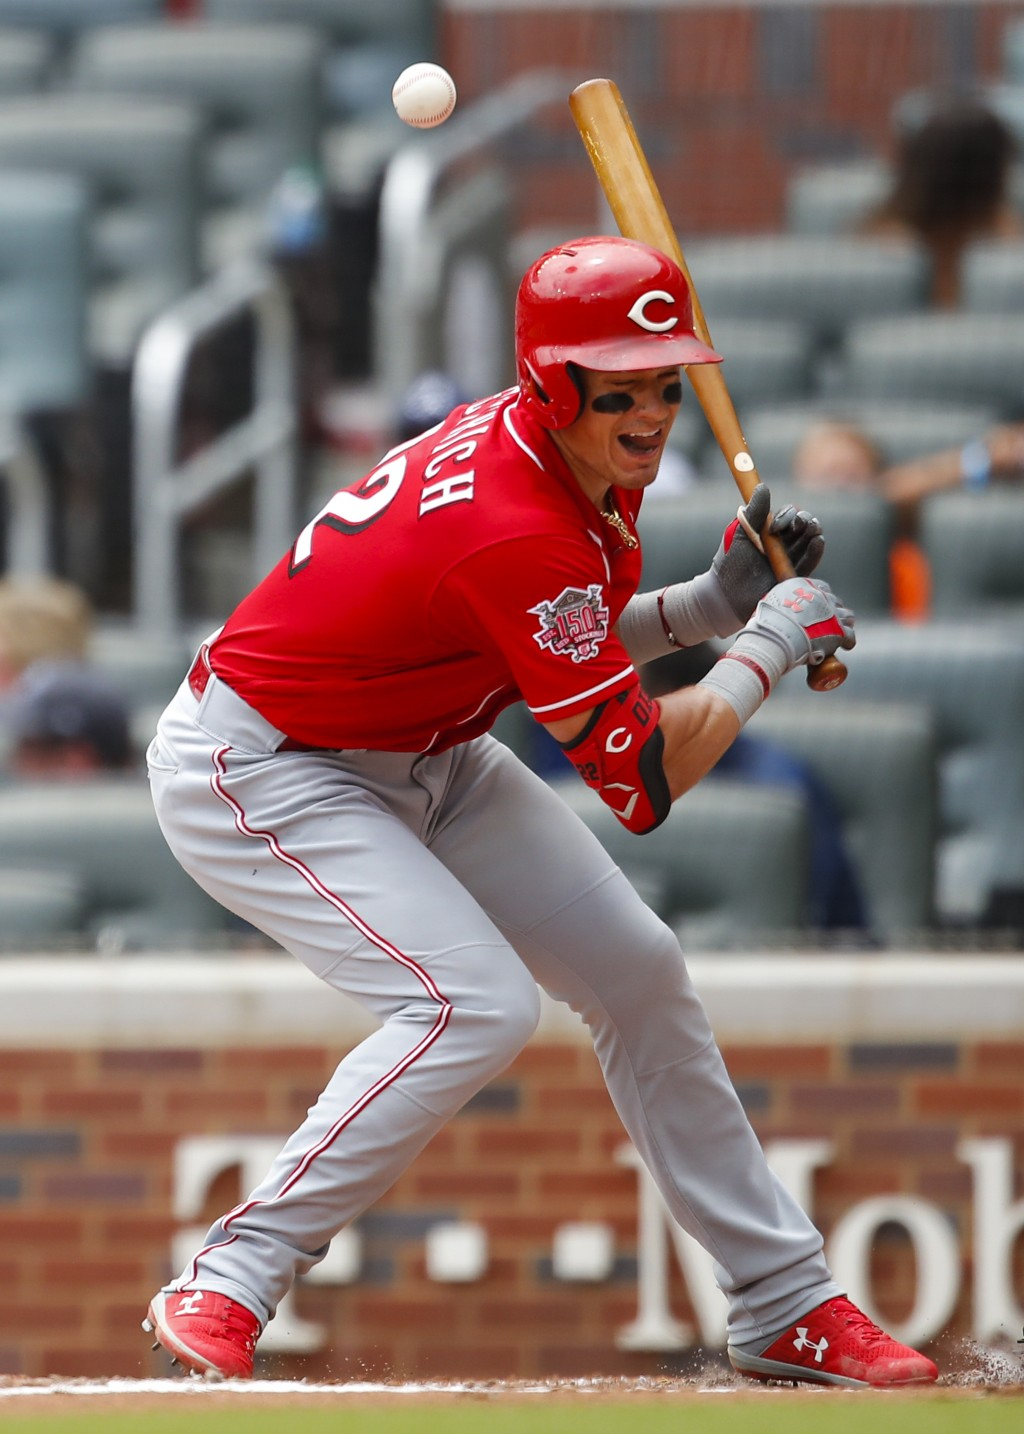 Cincinnati Reds Derek Dietrich (22) is hit by a pitch in the fourth inning of a baseball game against the Atlanta Braves, Sunday, Aug. 4, 2019, in Atl...